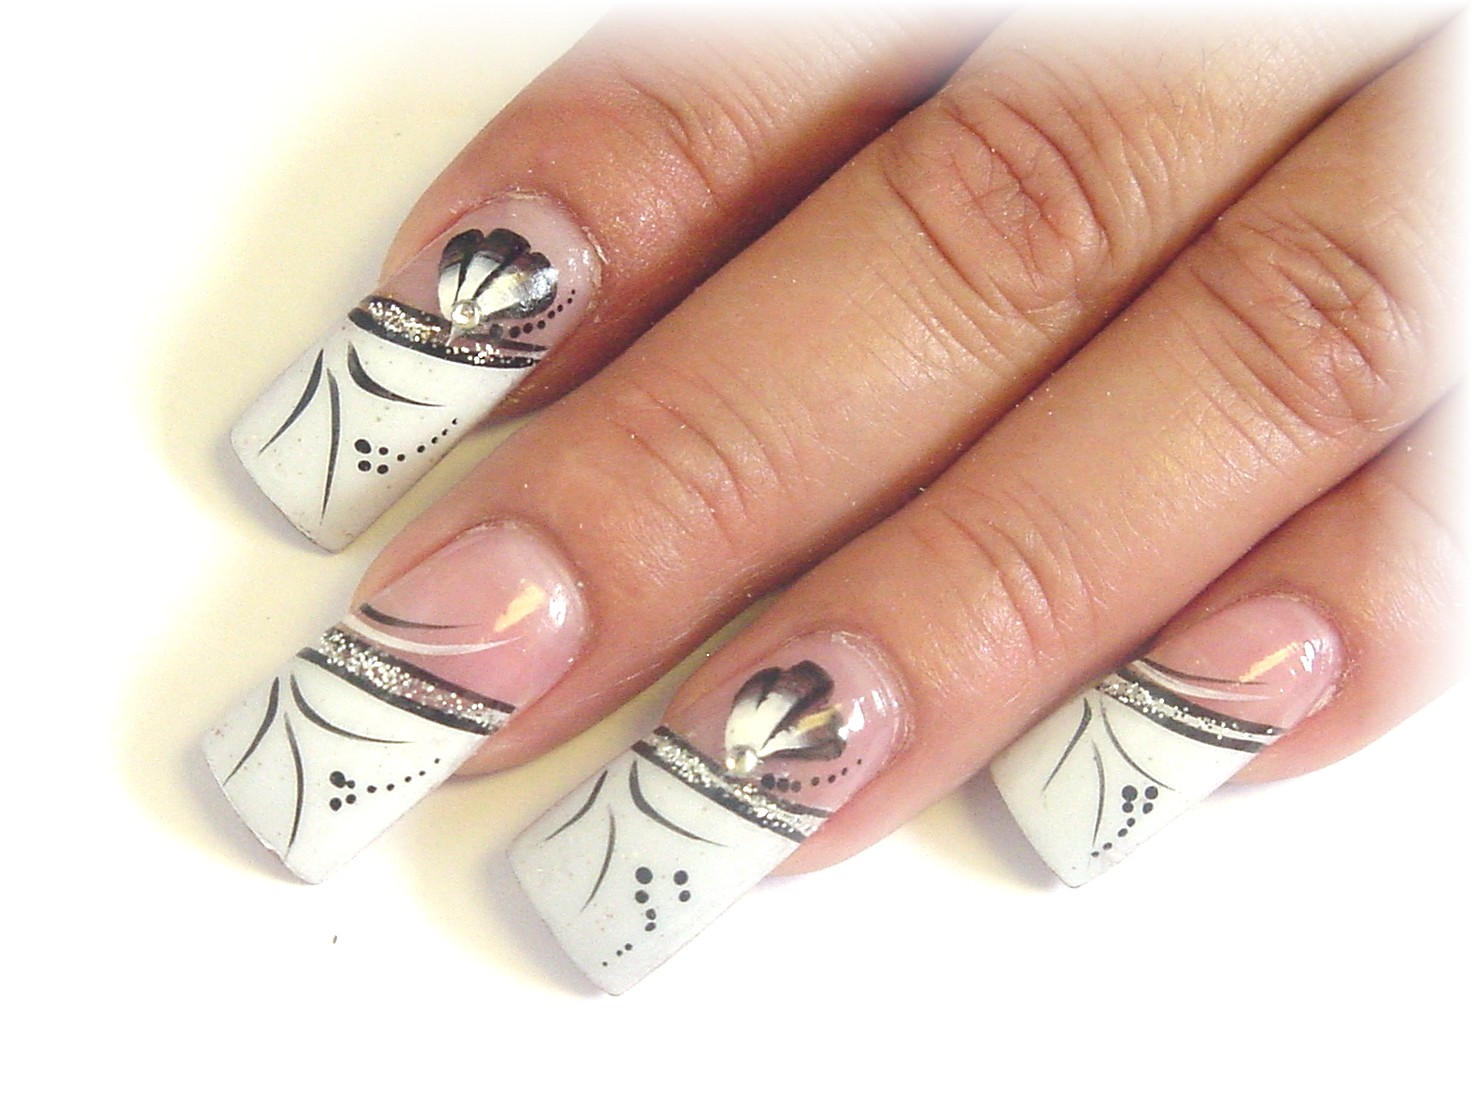 Nail designs for painting the little canvas day challenge rainbow view images flat nail paint prinsesfo Gallery